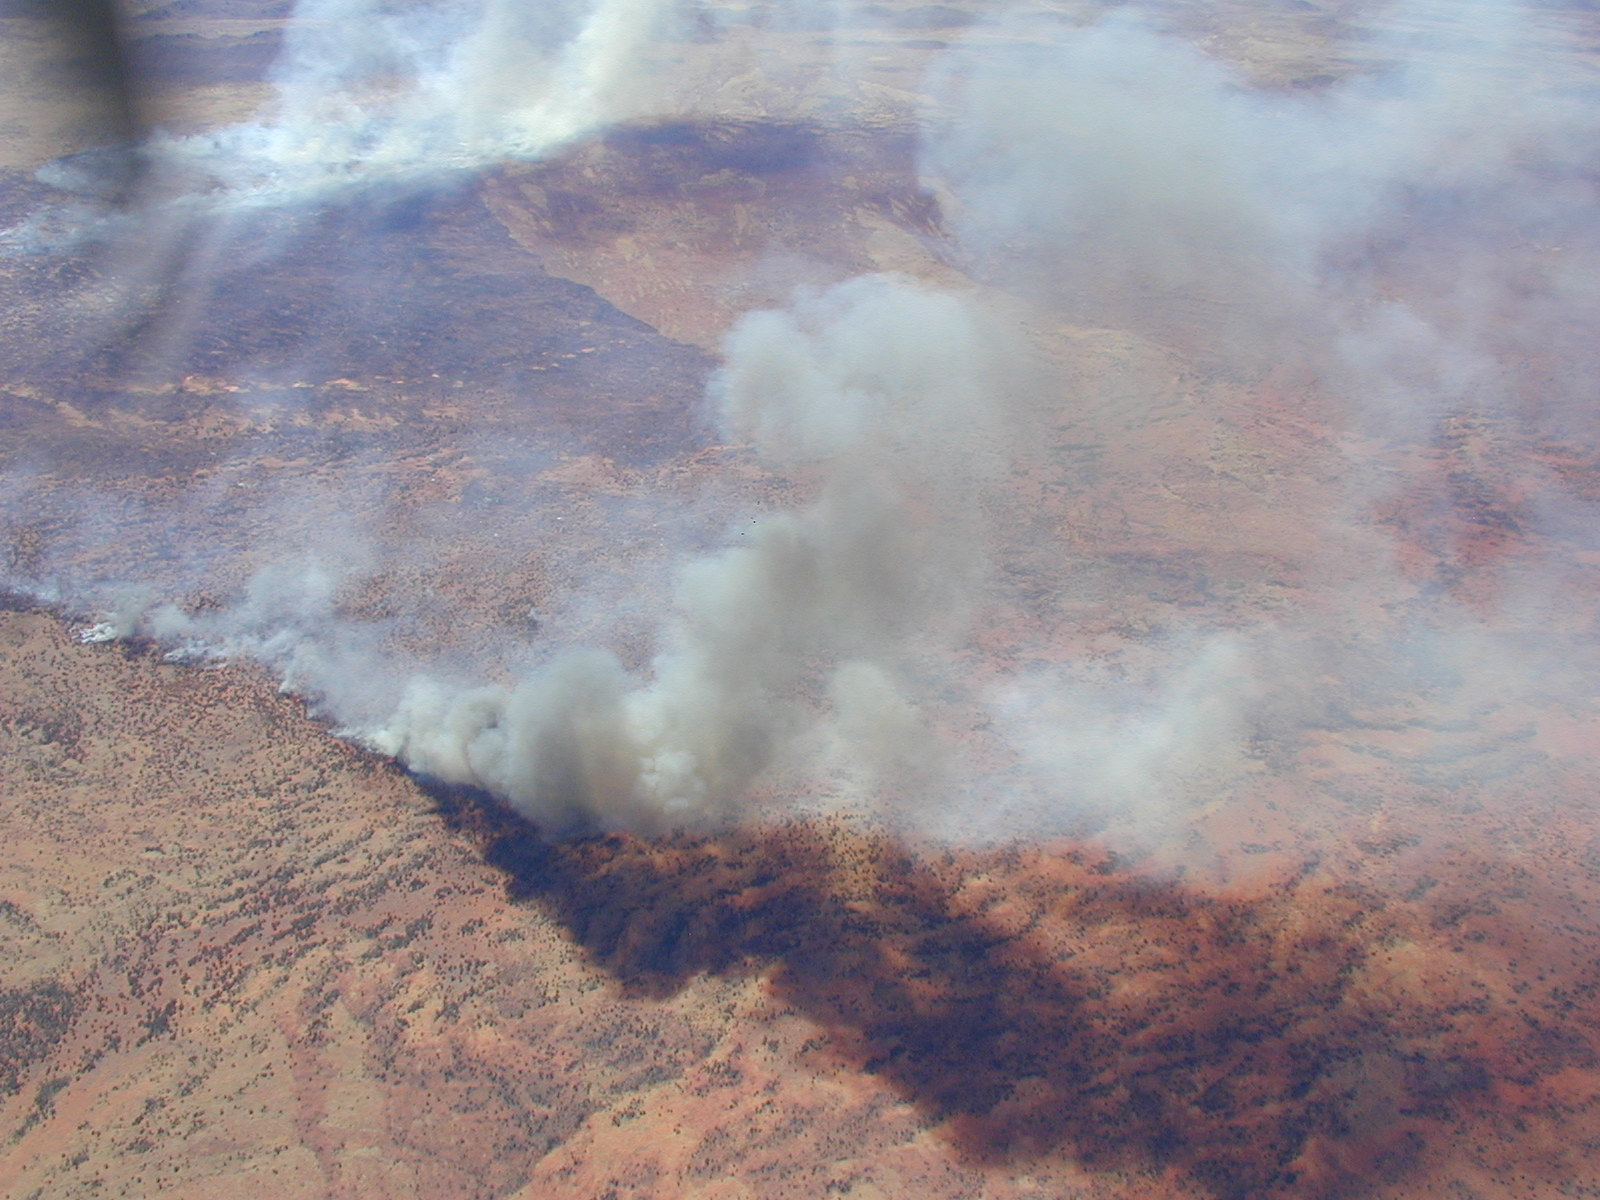 Wildfires in central Australia